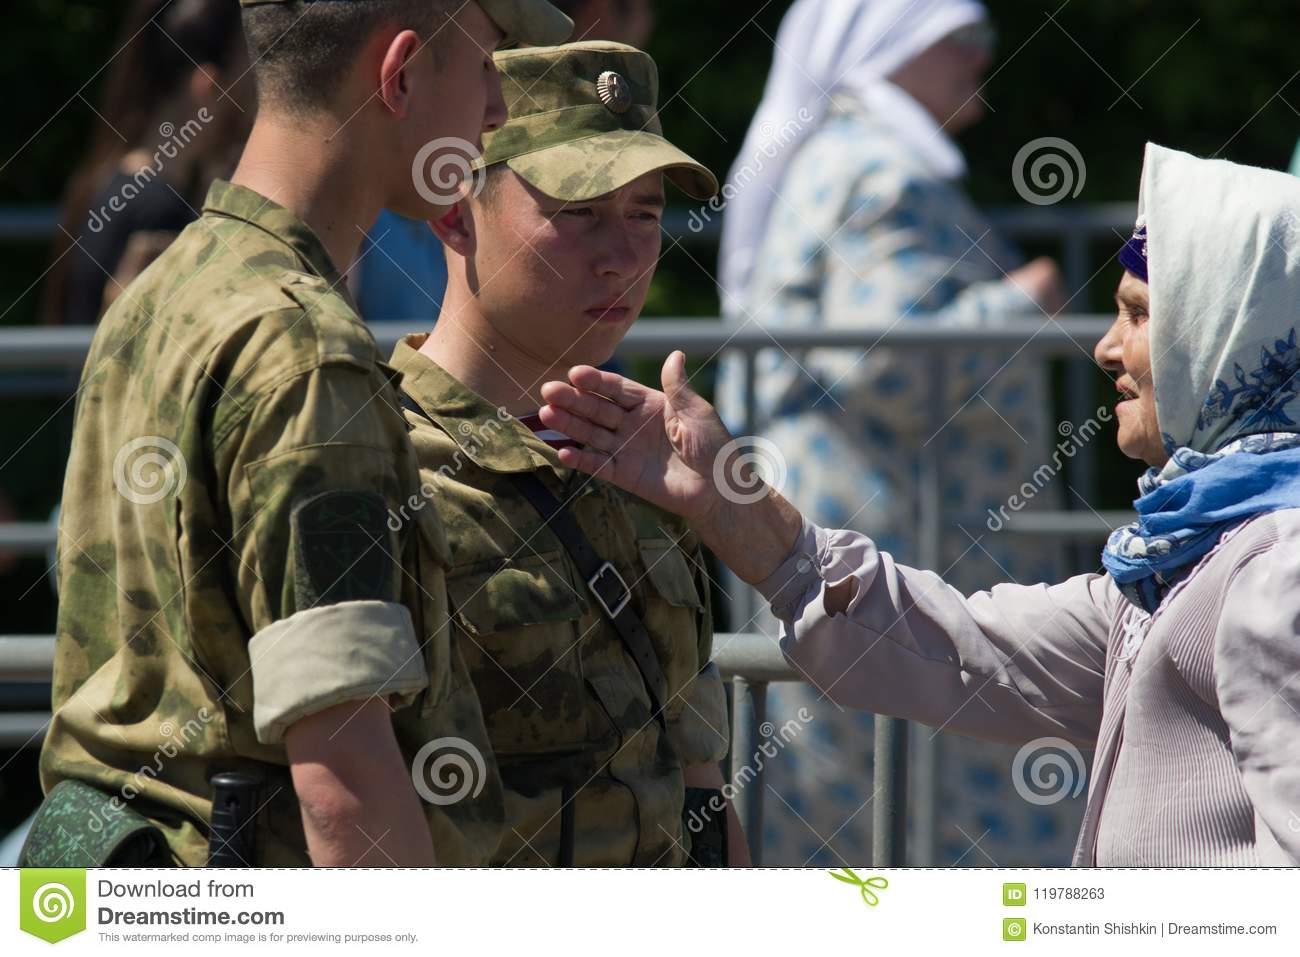 KAZAN, RUSSIA - JUNE 23, 2018: Traditional Tatar festival Sabantuy - Cute old woman in a scarf talking to young soldiers